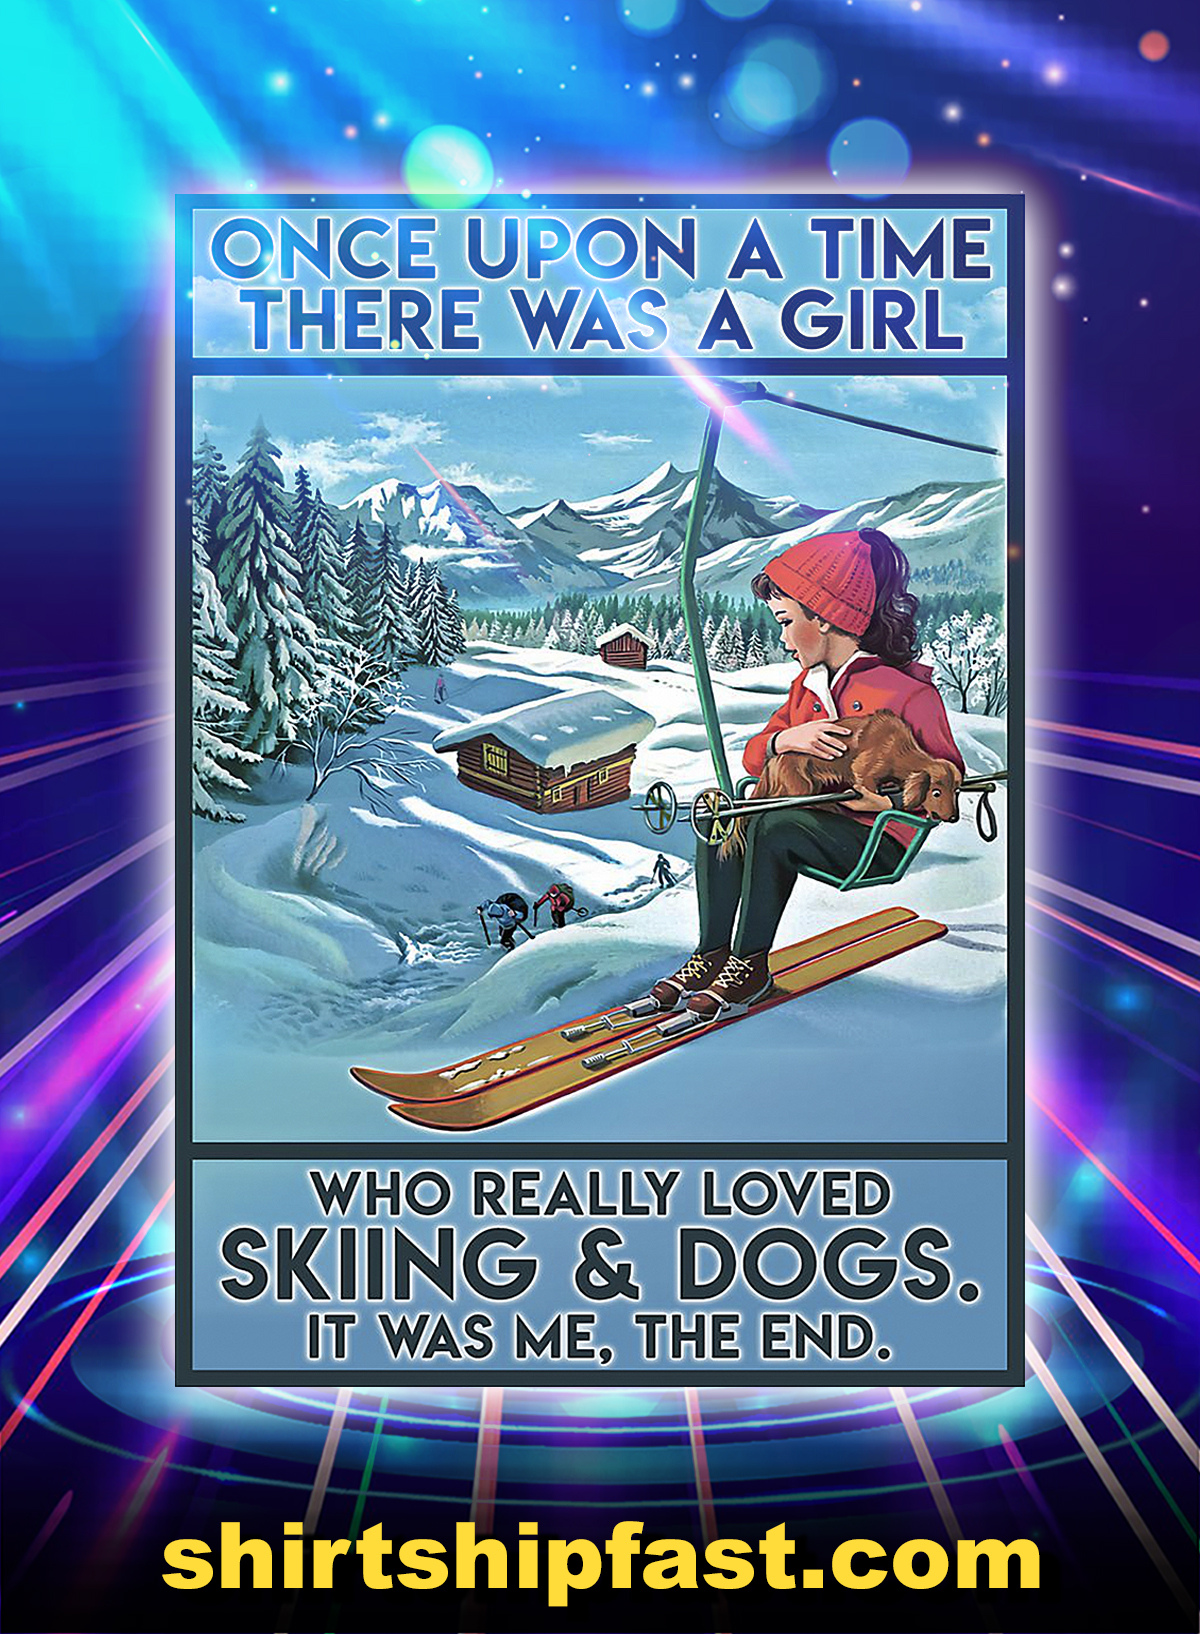 ONCE UPON A TIME THERE WAS A GIRL WHO REALLY LOVED SKIING AND DOGS POSTER - A4